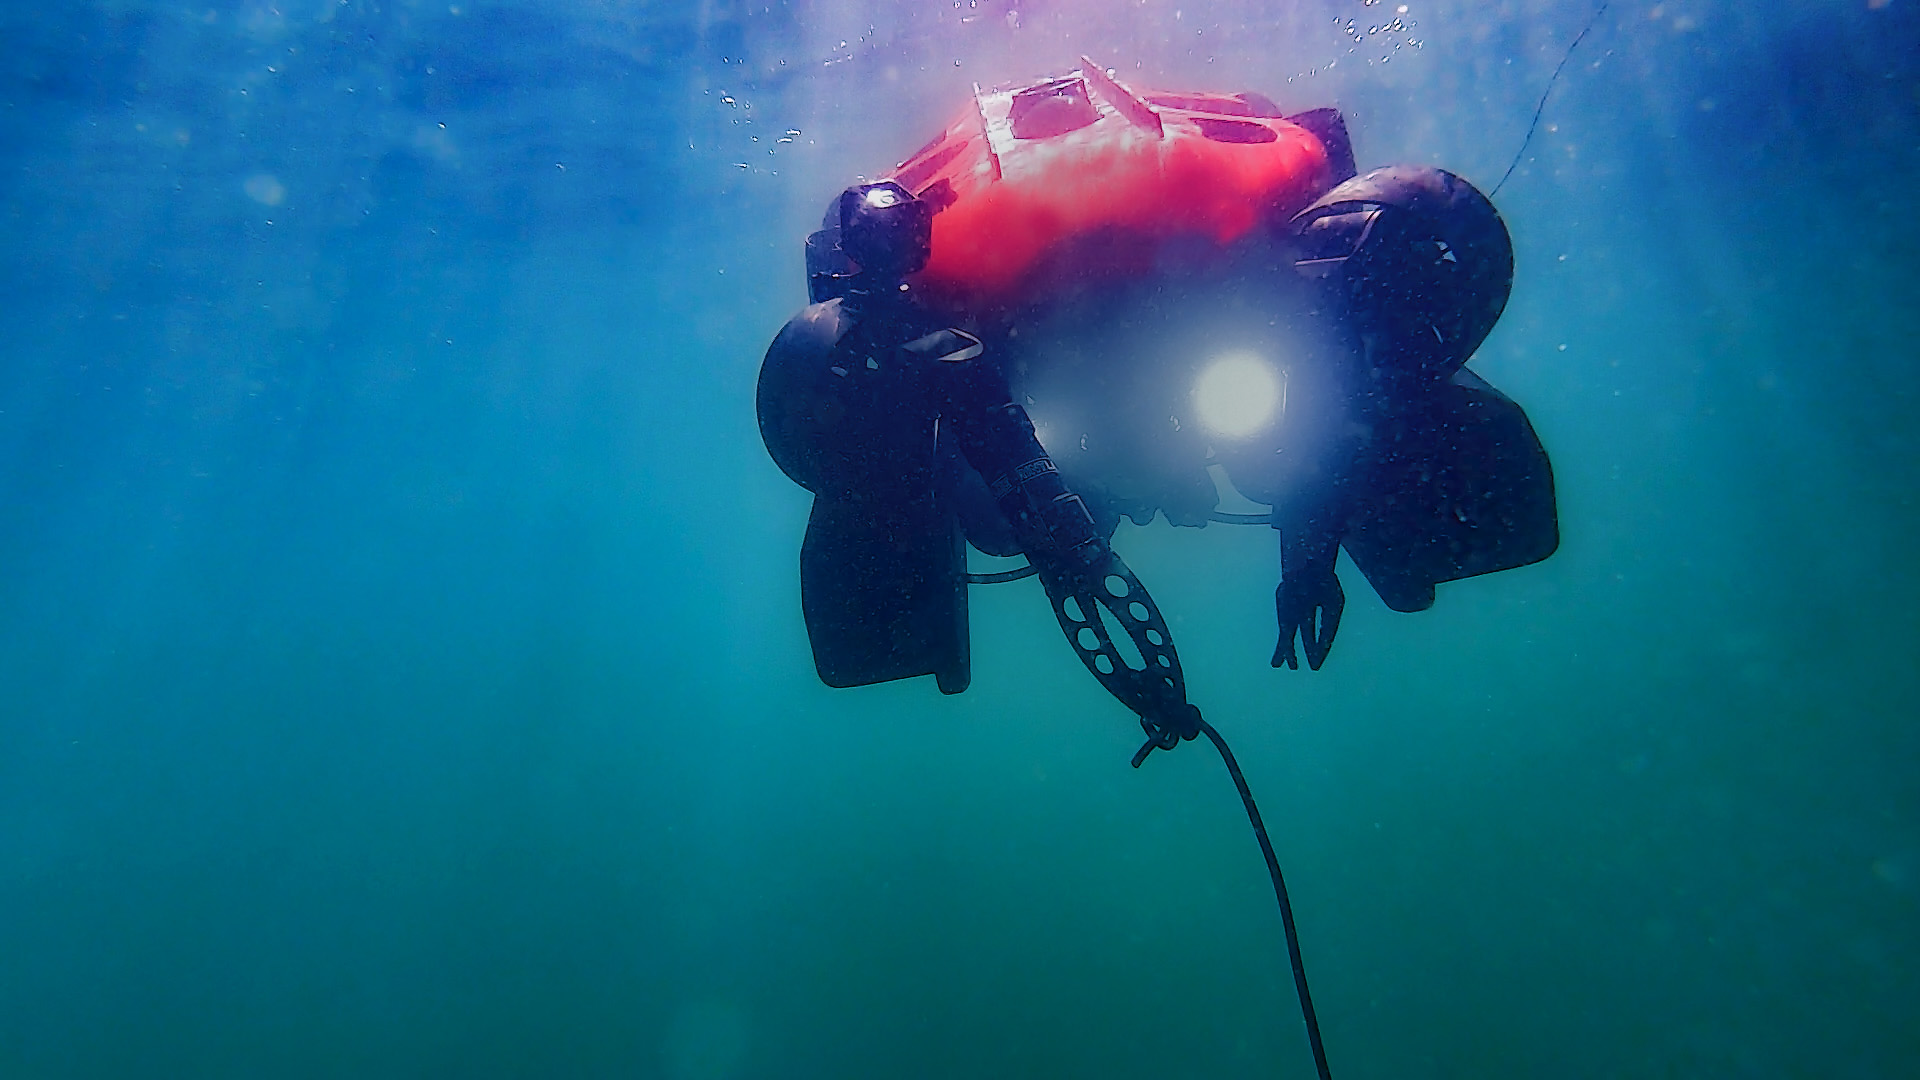 A test dive in Sydney Harbour 2021